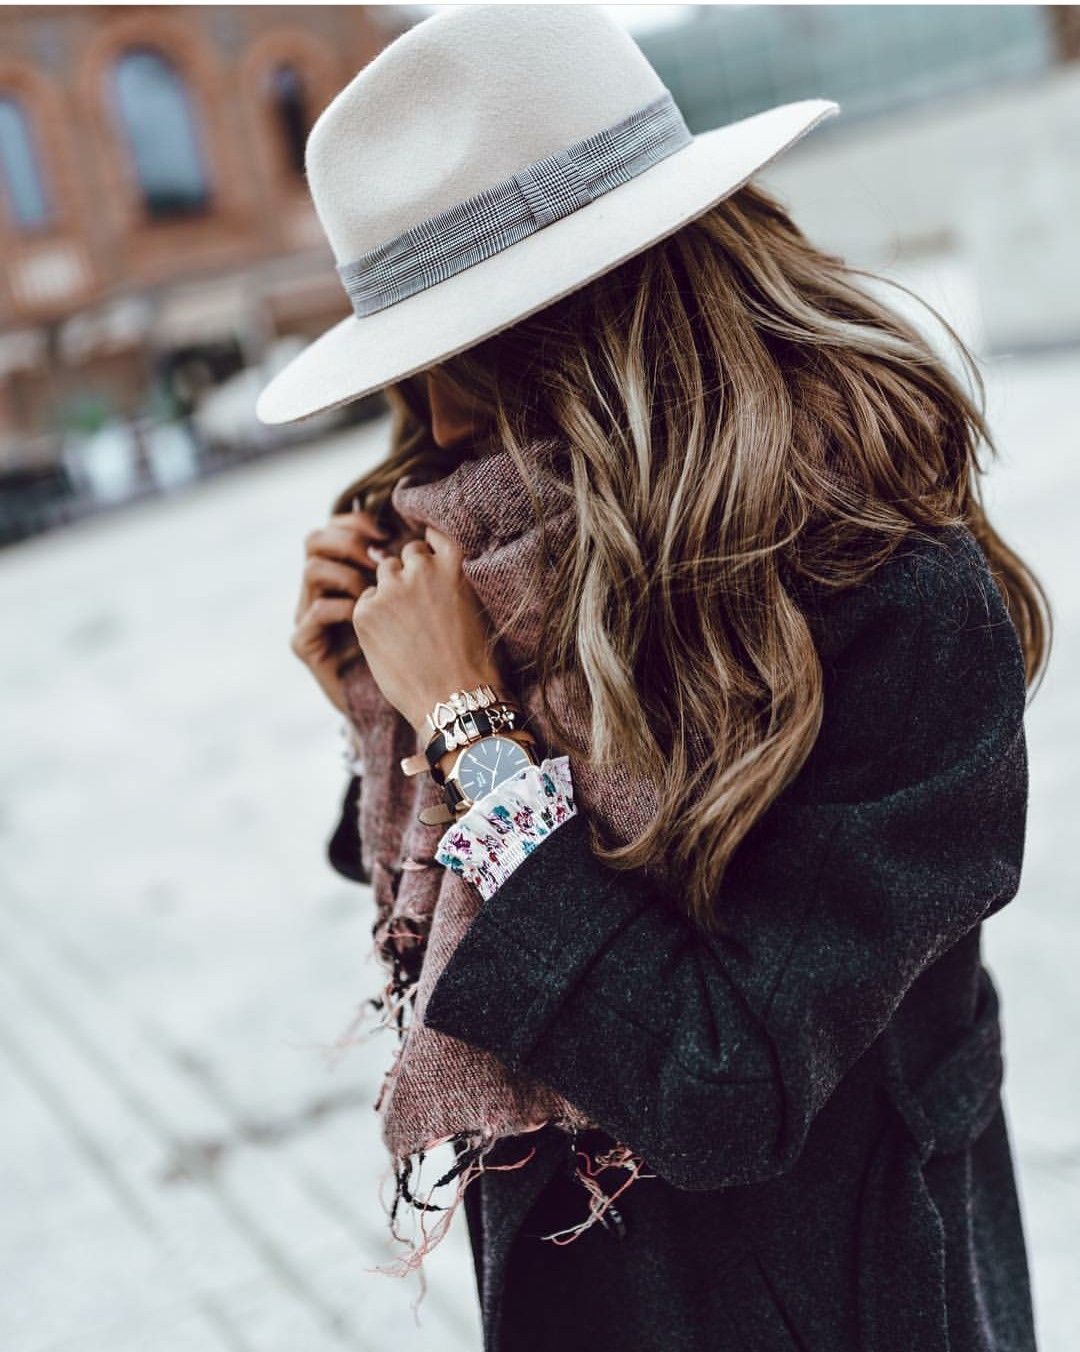 Pin By Rosa Garcia Herrera On Accesorios Y Complementos Outfits With Hats Fashion Outfits